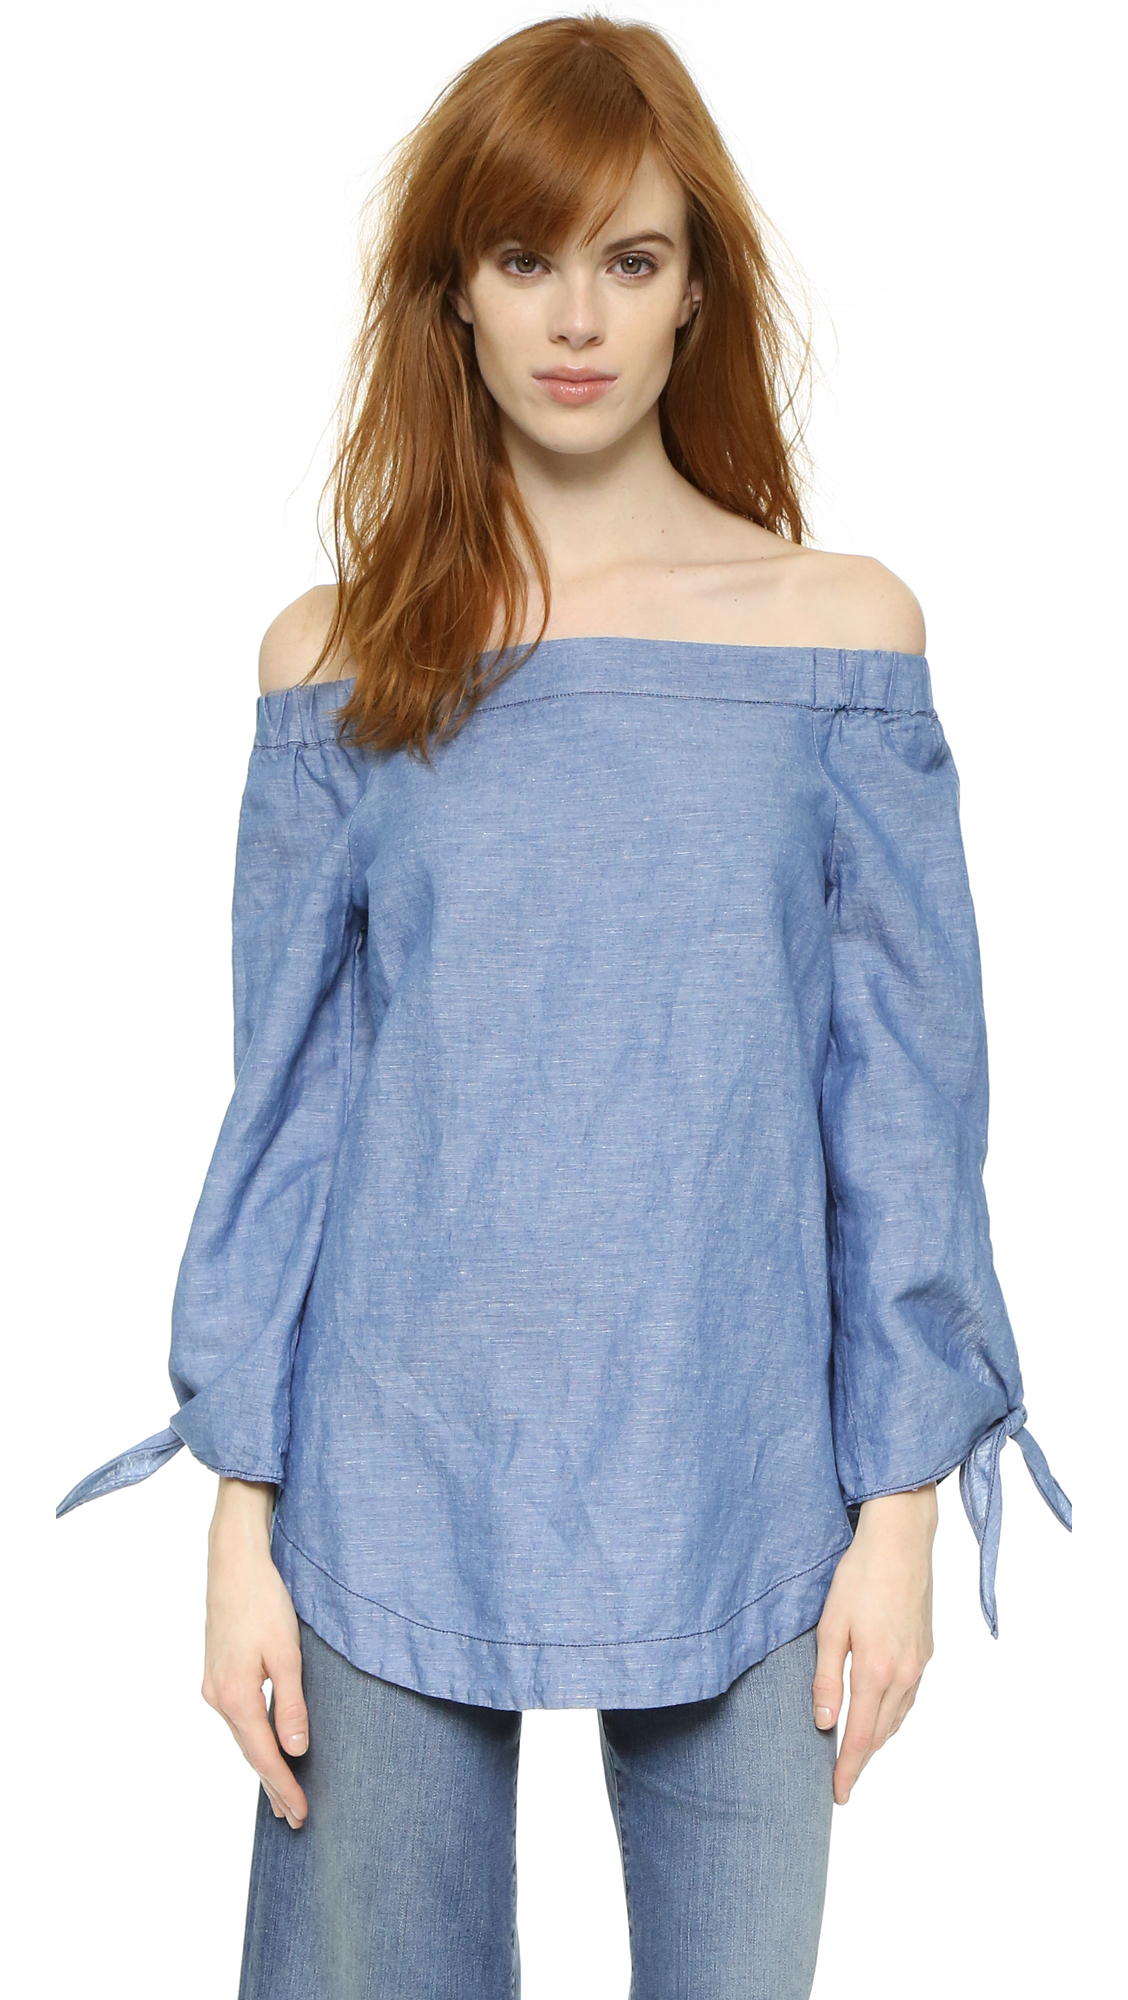 Free People Show Me Some Shoulder Blouse - Chambray at Shopbop